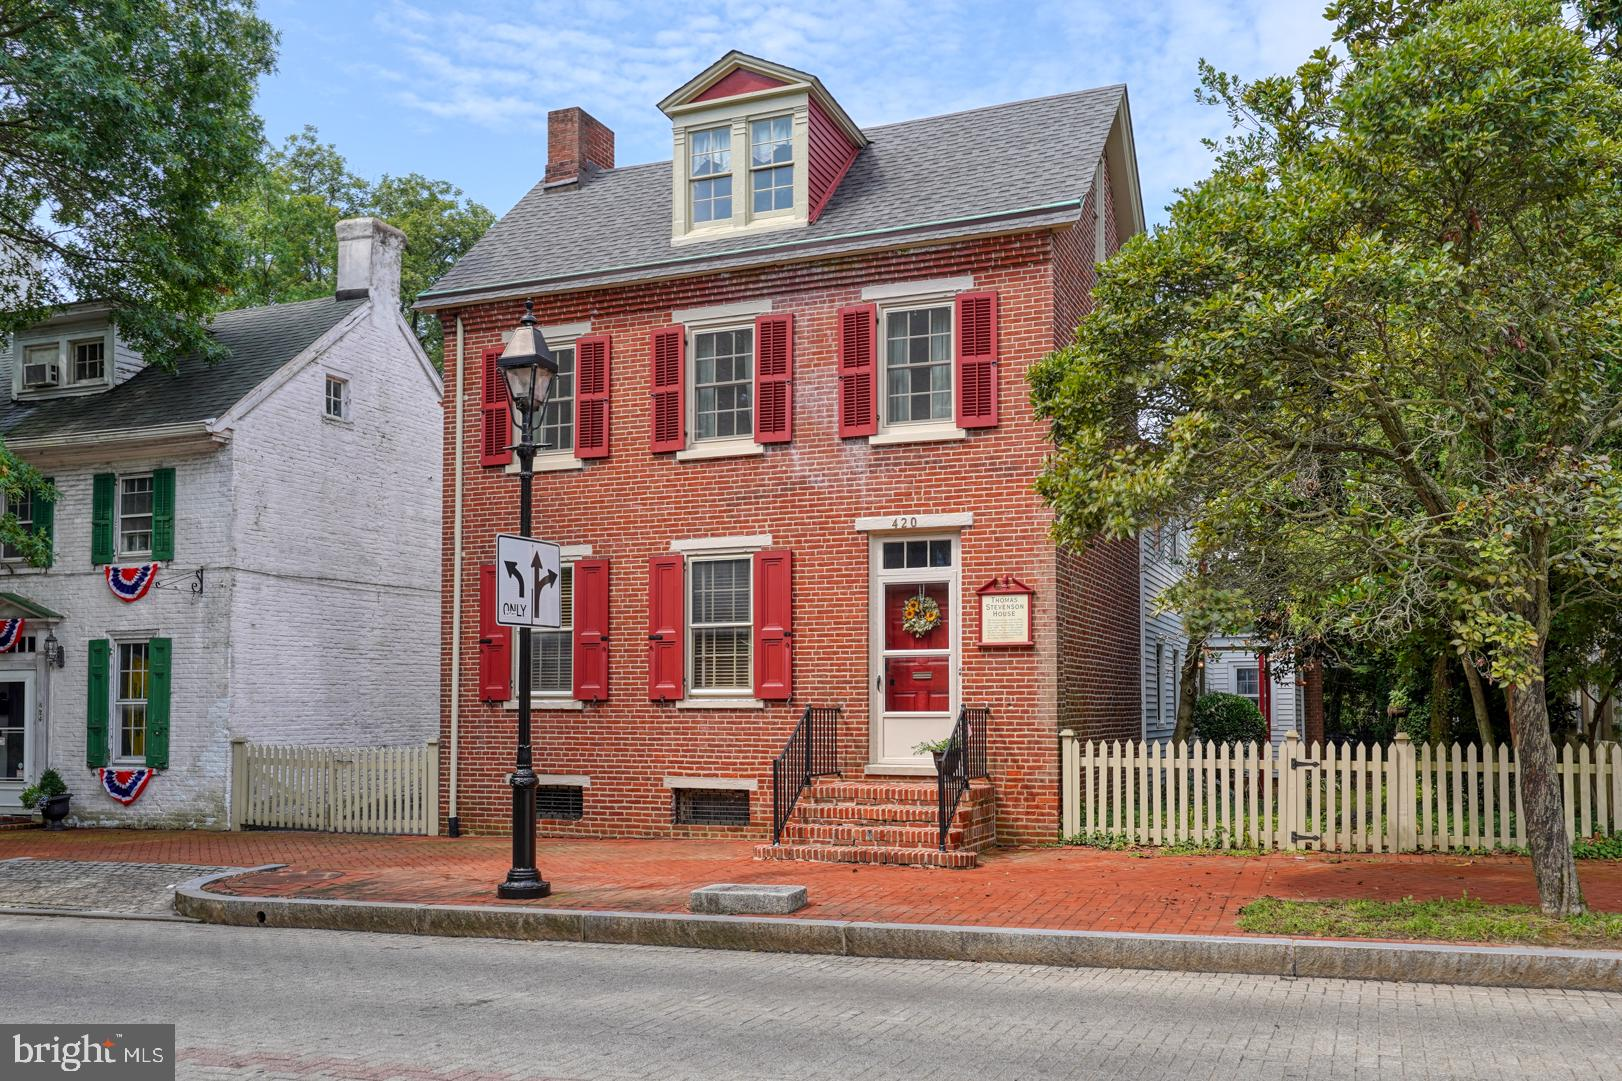 Step back in time with this glorious colonial home known as The Thomas Stevenson House.   Situated on a 1/2 acre lot with a park like setting,  the brick home was built in 1846 and was joined with the other structures to the rear of the property that included a summer kitchen and a 2 room schoolhouse.    Located just off of The Green in downtown Dover,  an area that celebrates the history of the state of Delaware.  The home sits on a large property which has a huge park like setting in the fenced backyard.  It can be accessed from S State Street or a private driveway off of W Water Street.   Upon entering the front door the first floor includes a sitting room with a fireplace surrounded by Delft tiles and built in shelves.  There is a butlers pantry directly off of the sitting room.  Down the hall you will find the dining room with another fireplace and a back stairway to access one of the upstairs bedrooms and sitting room.  The cozy kitchen is in the room next to the dining room with another fireplace.  To the rear of the kitchen is a laundry room with half bath.  Directly off of the laundry room is the former summer kitchen and the original 2 room schoolhouse with side door entry and stairs to one room of the schoolhouse.  The entry level of this area could easily be converted to another living area or a first floor bedroom and full bath.   Upstairs there are 2 bedrooms in the hall that share a full bath.  There is also an inlaw suite complete with full bath and sitting area.  Sitting area could be another bedroom.  The sitting area and the bedroom both access the stairwell to the dining room.    There is also an attic space, perfect for storage.   Really unique home that was previously owned by a local historian who lovingly restored it to its original state.  The home has only been used as a residence but the current zoning does allow for office space.   Conditional uses include shops, bakery, B&B, restaurant, etc.